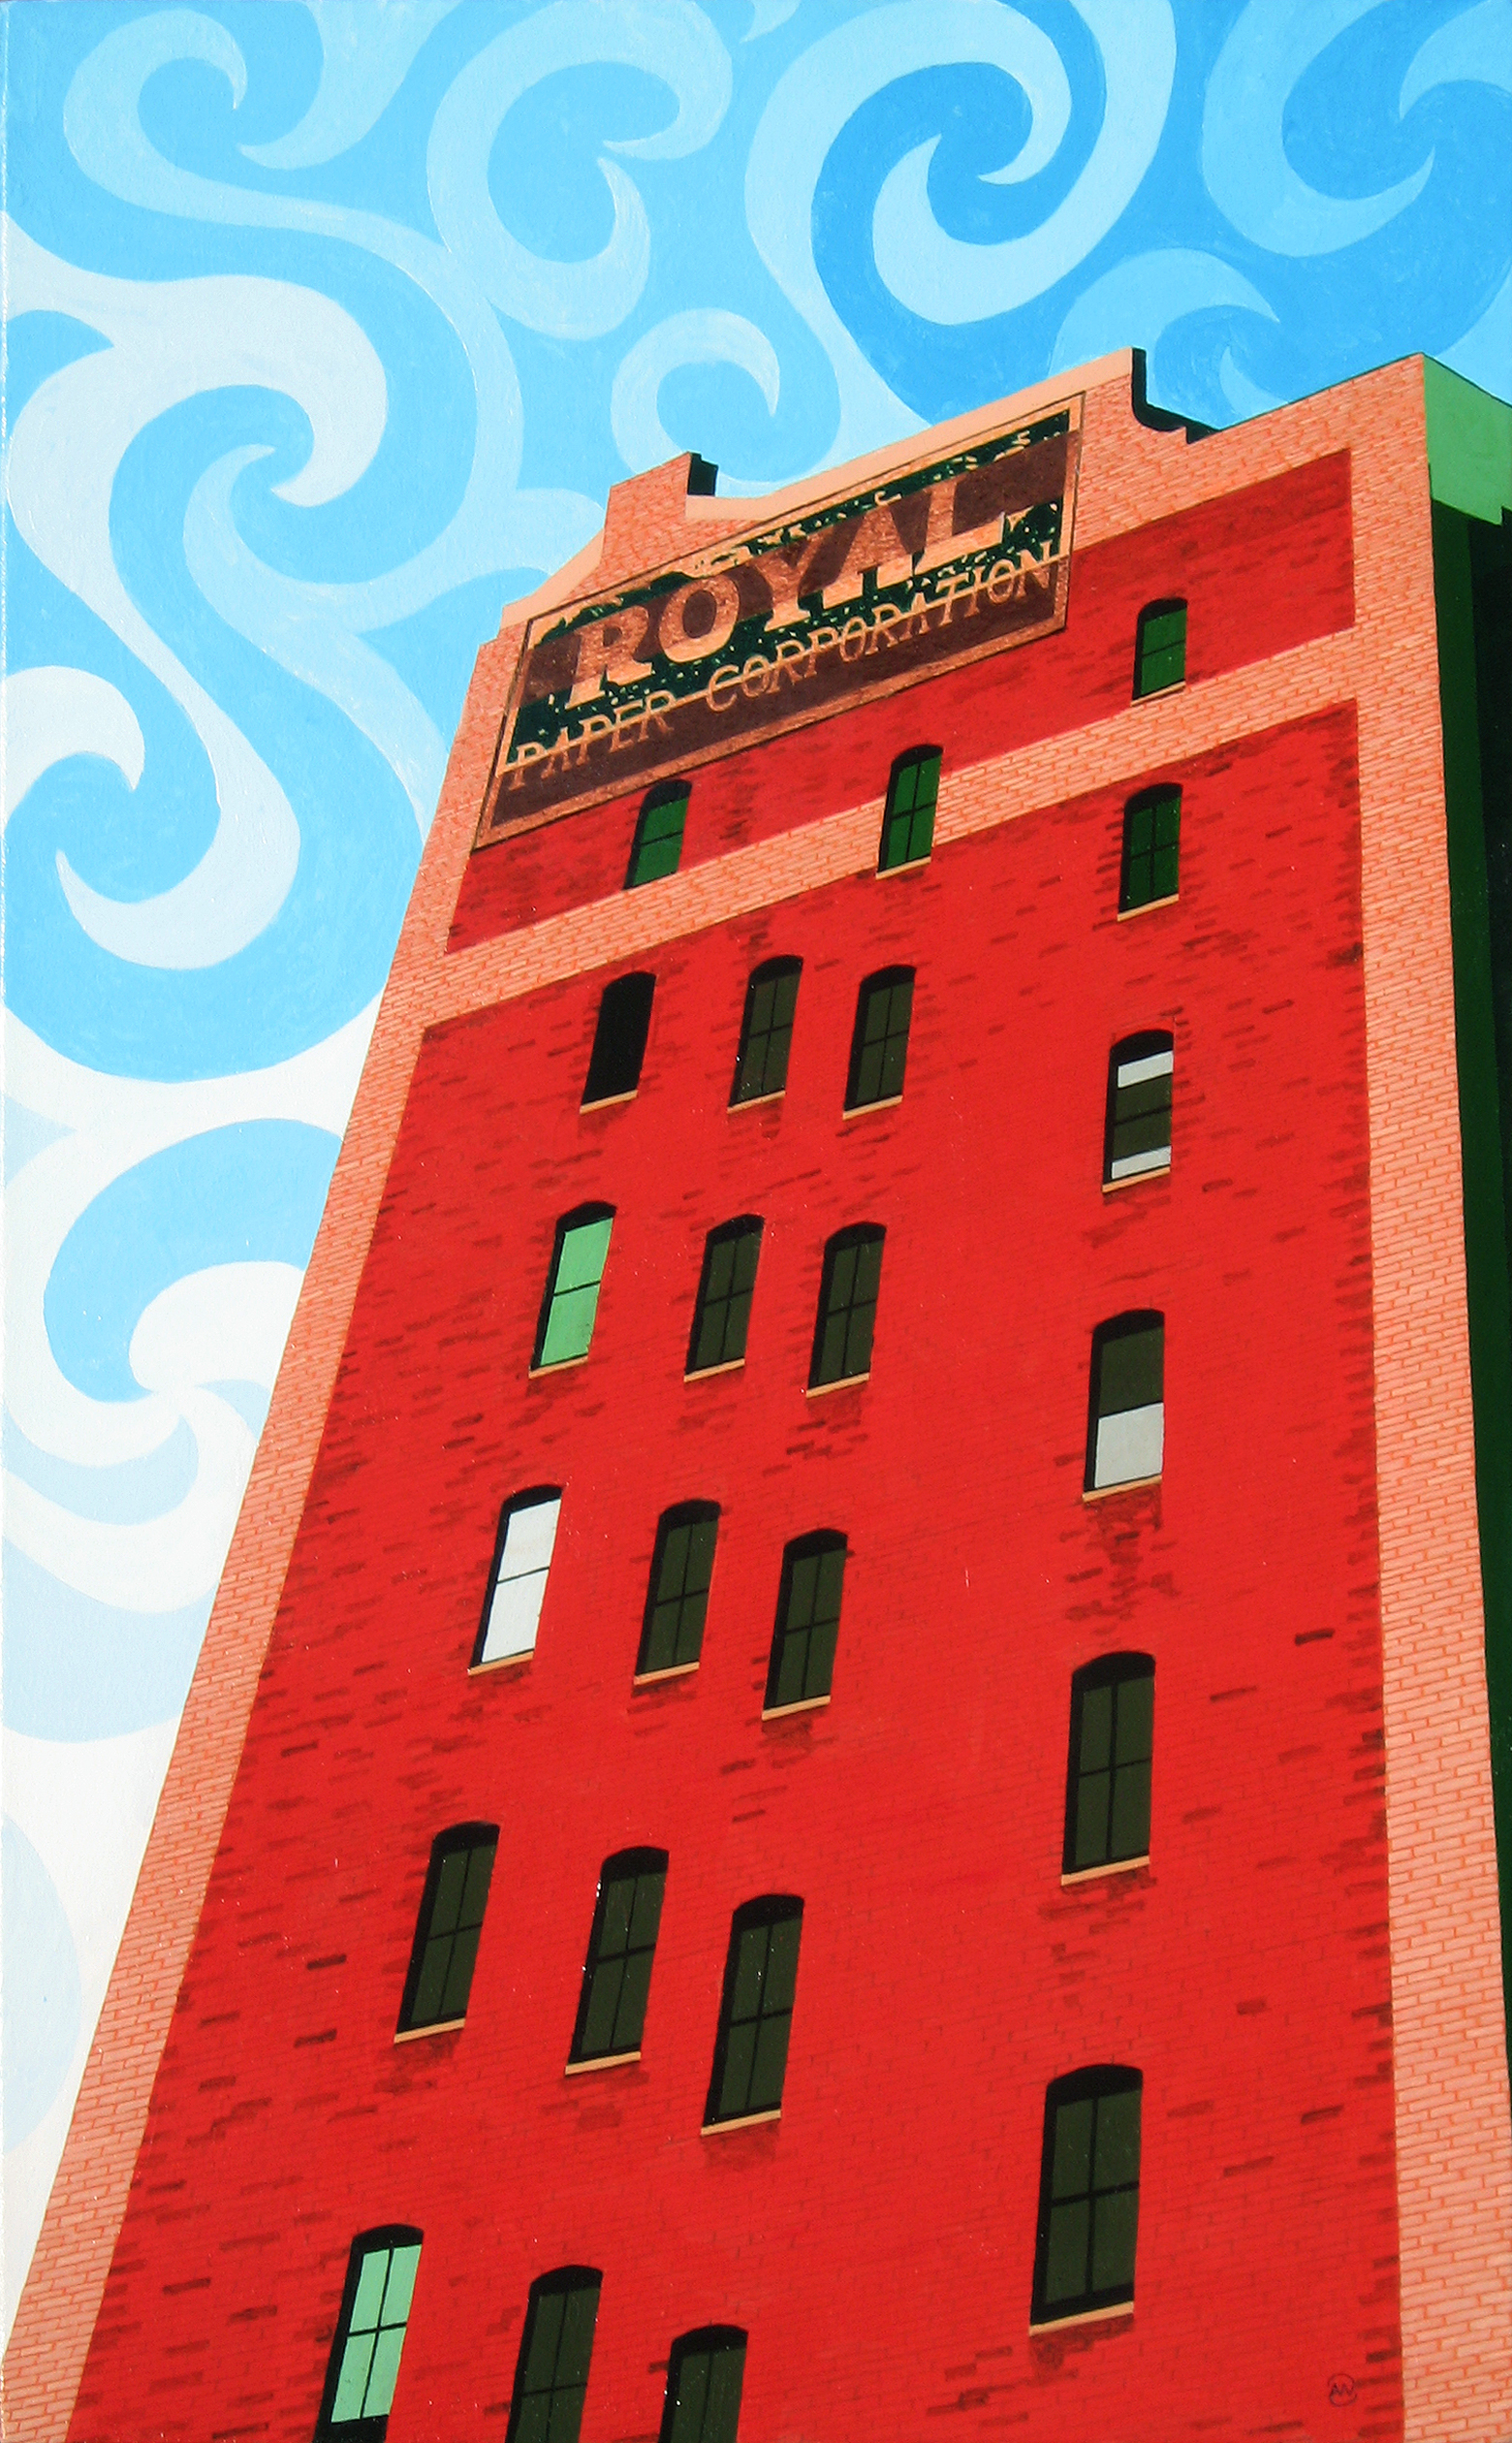 Royal Paper Corp.